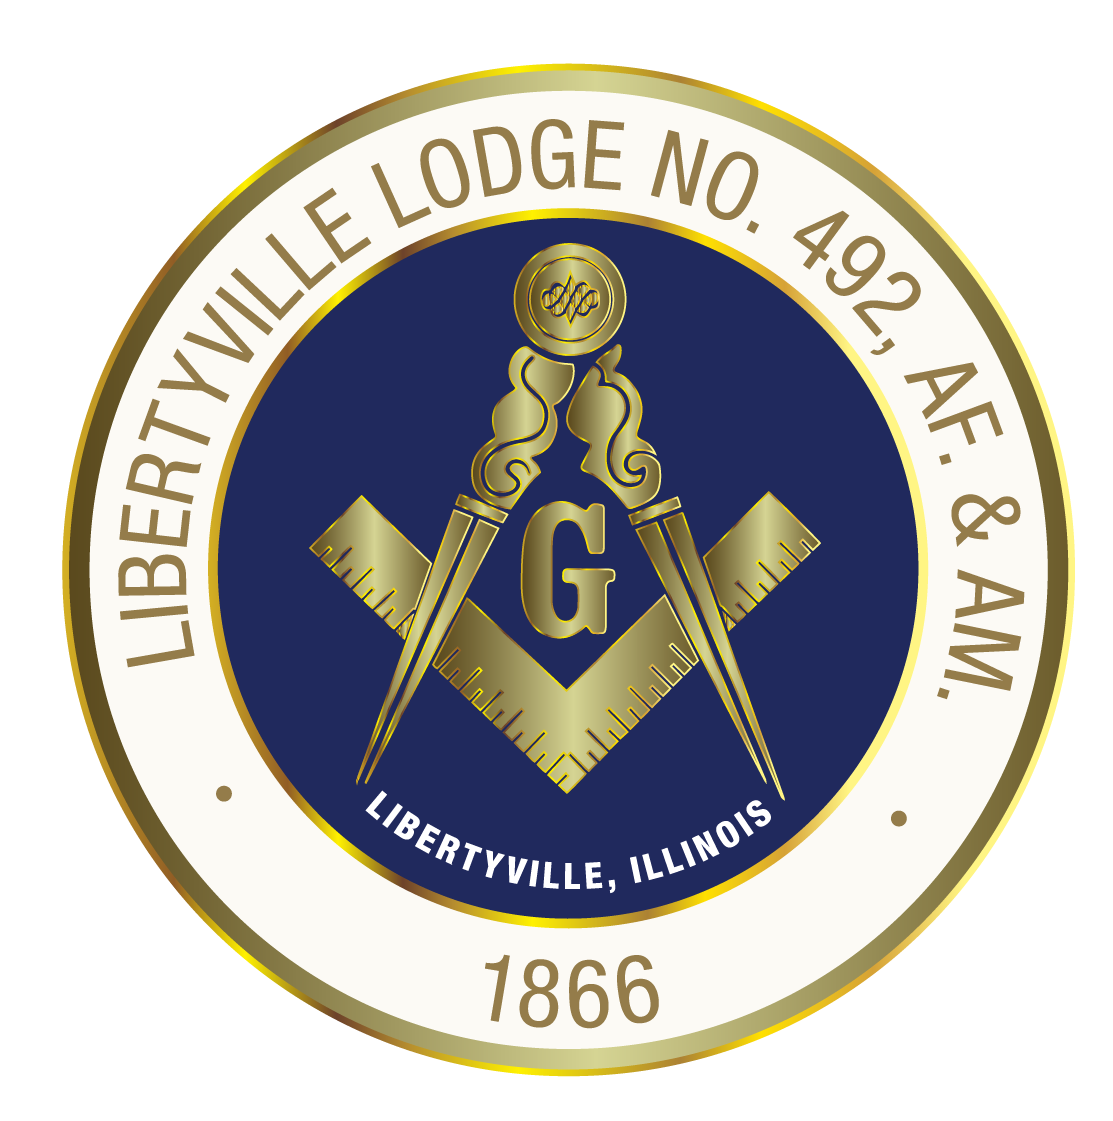 Libertyville Lodge #492